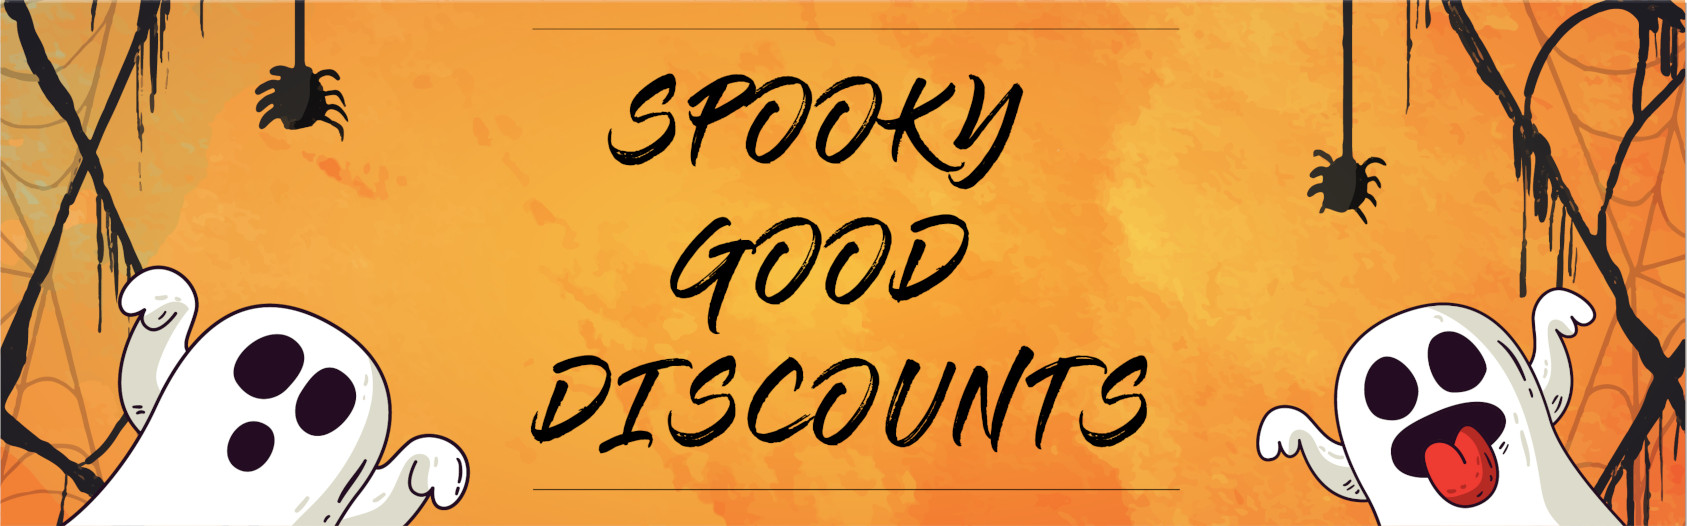 SPOOKY GOOD DISCOUNTS AT INFO & TICKET CENTER Bannner